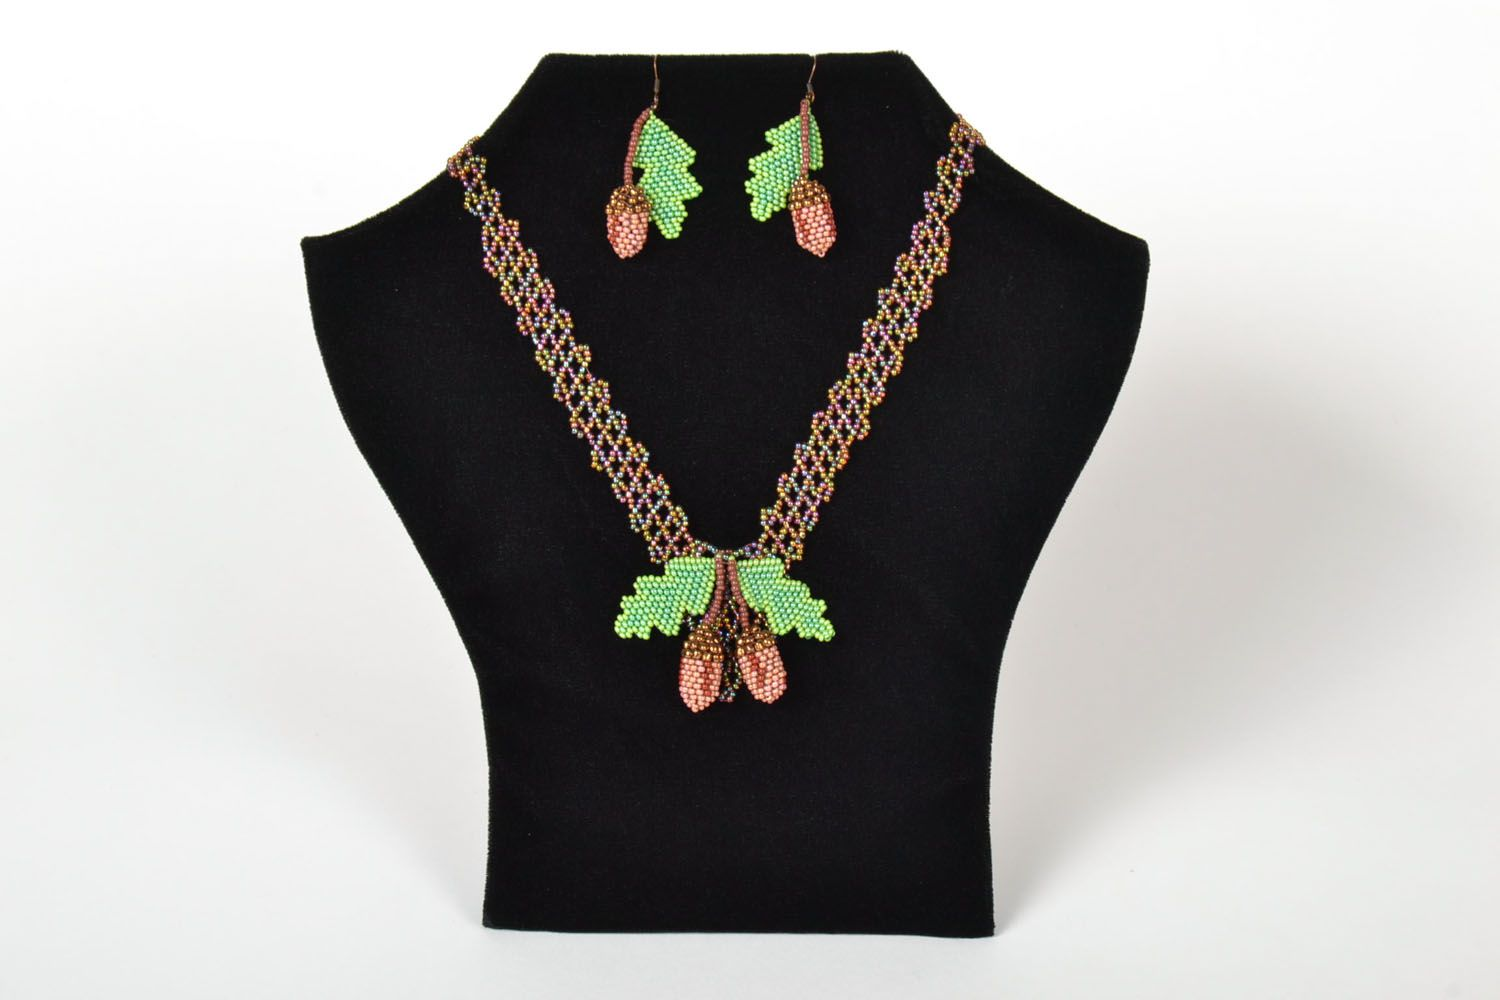 Beaded necklace and earrings photo 1